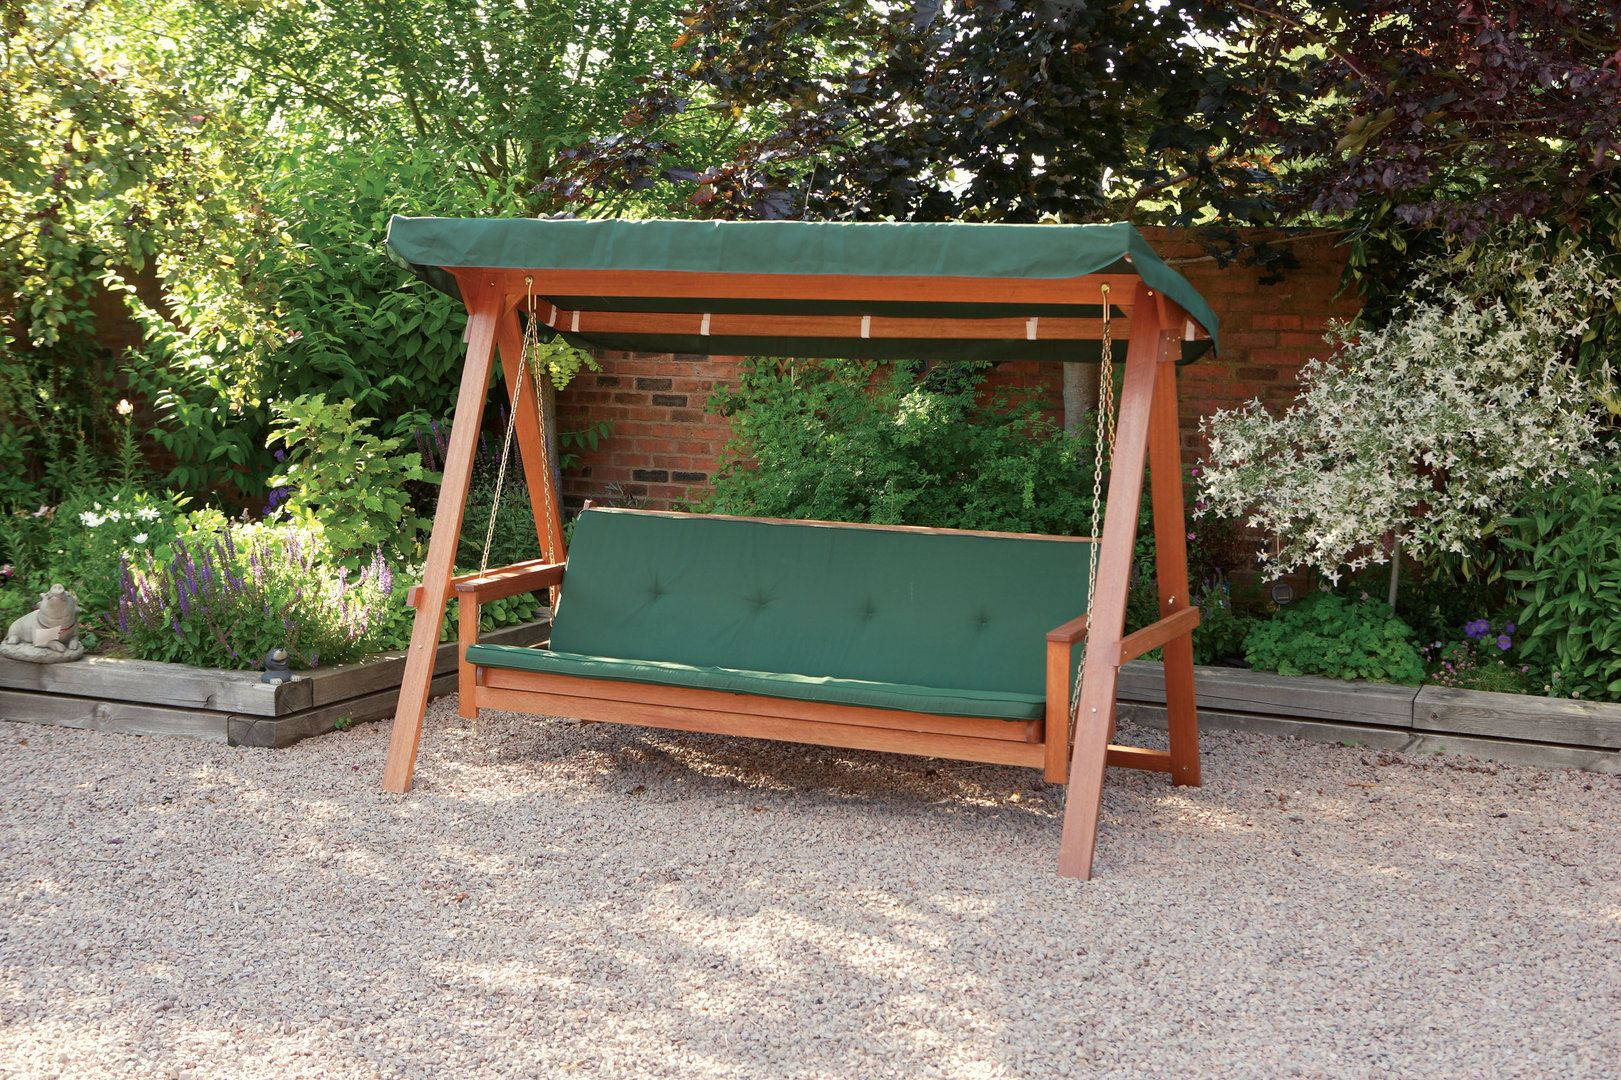 Quality Wooden Swing Bed 3 Seater Garden Swing Seat With